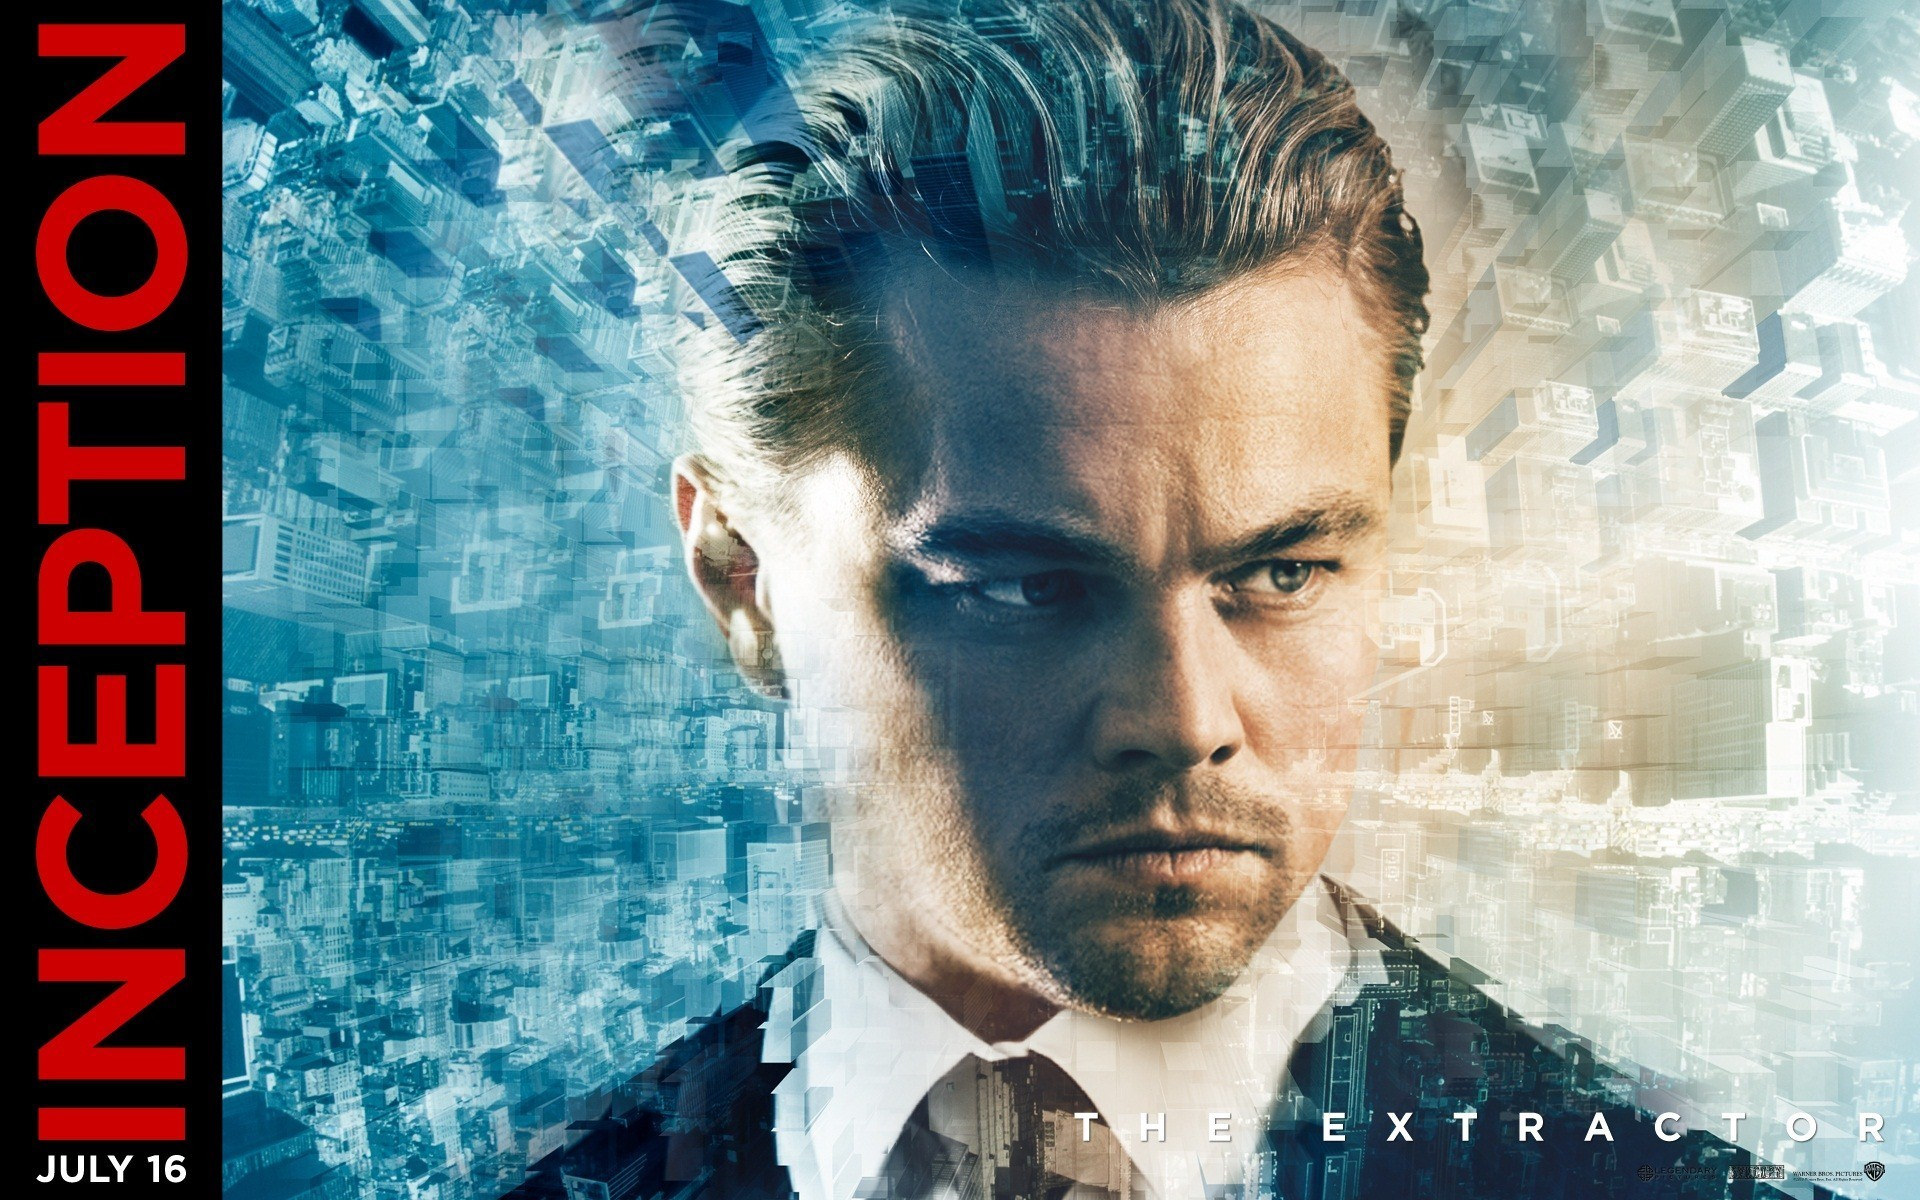 1920x1200 Leonardo DiCaprio Inception Movie Cover Image